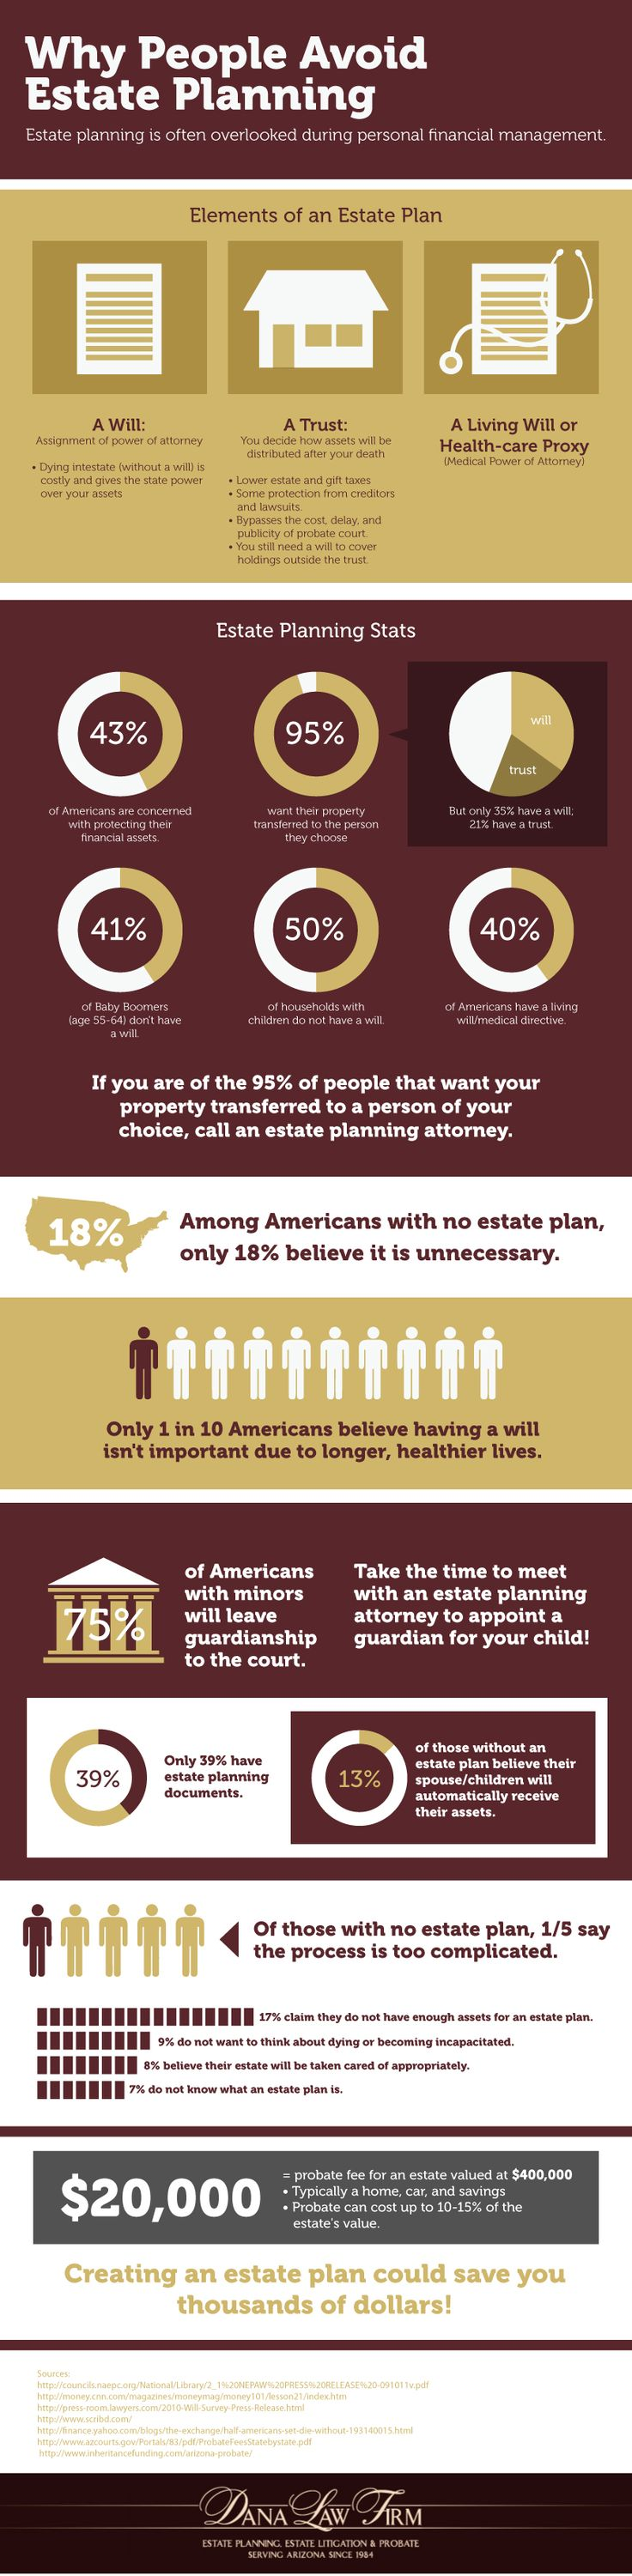 Why People Avoid Estate Planning (Infographic)